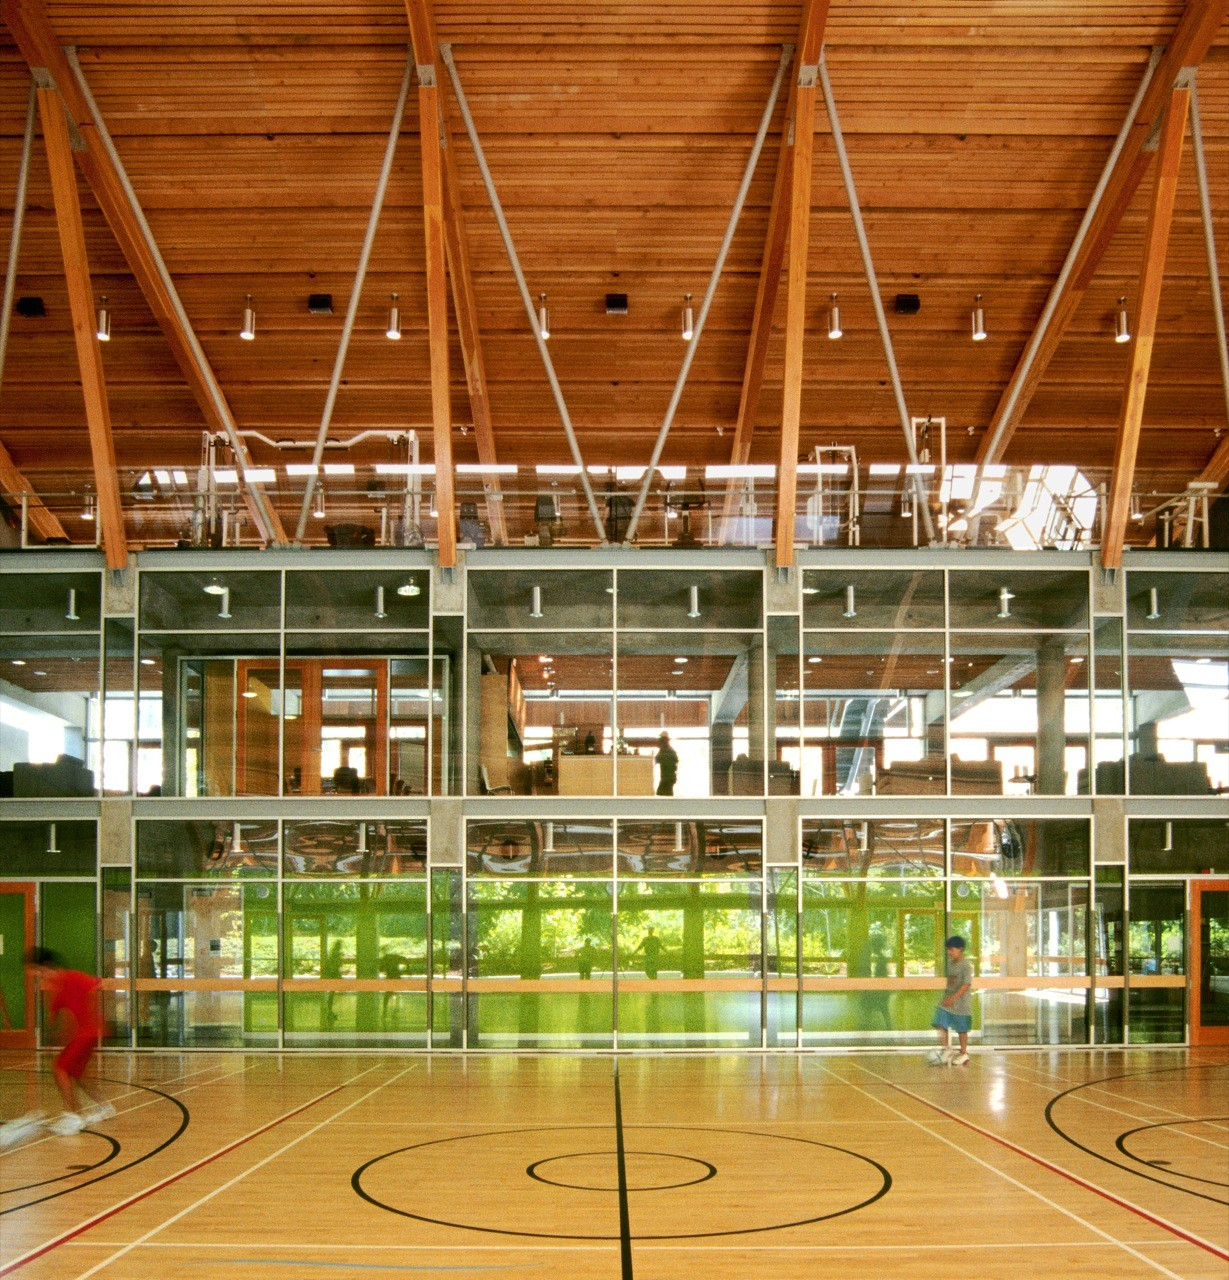 Flooring For Home Gym Canada: Gallery Of Gleneagles Community Center / Patkau Architects